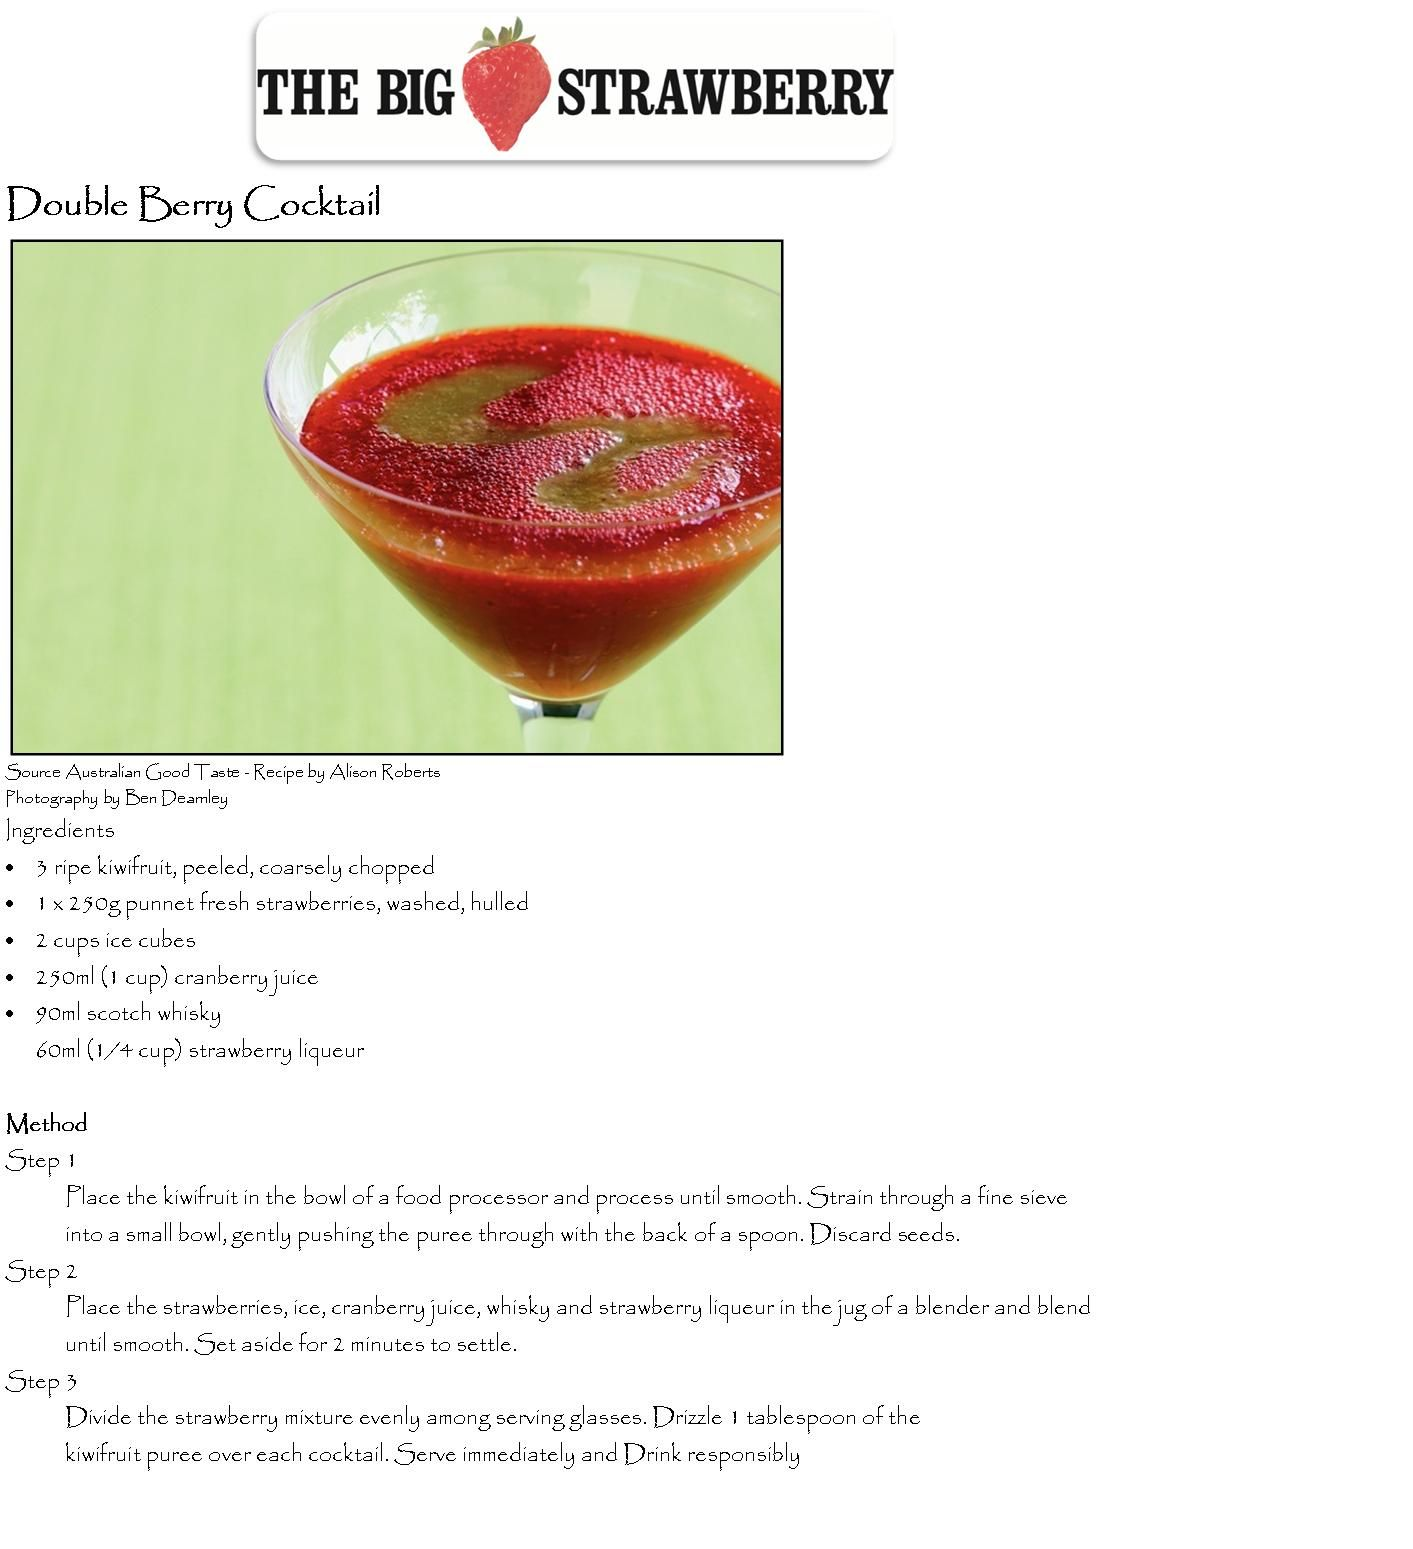 Double Berry Cocktail